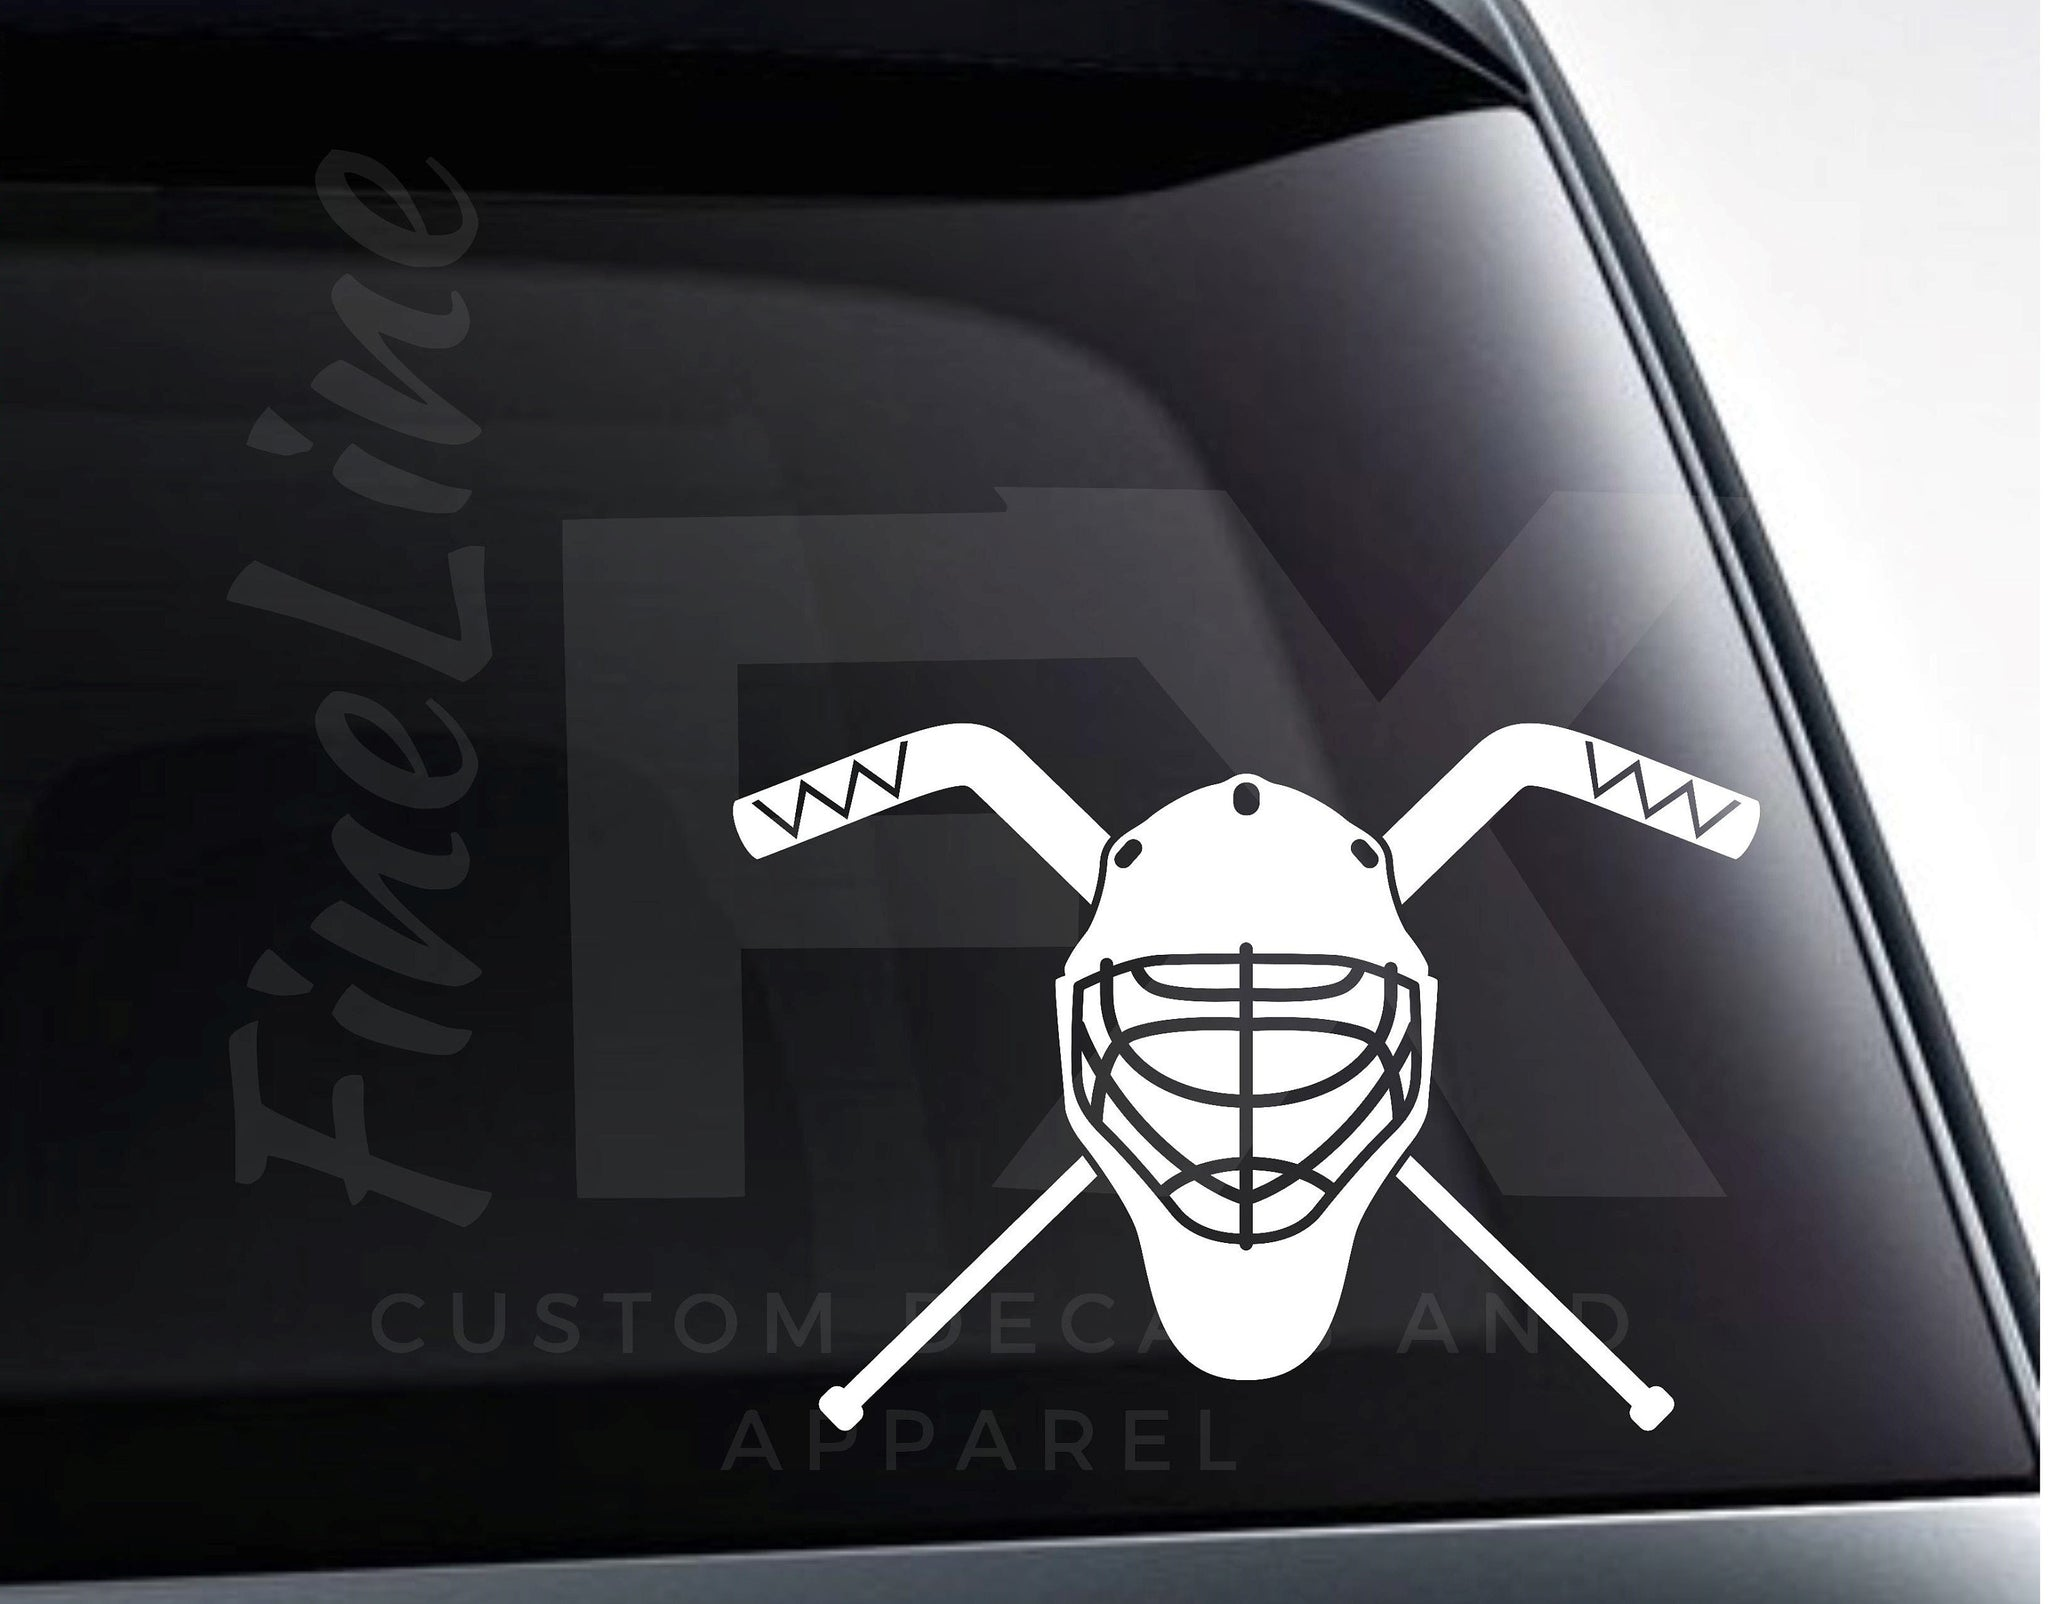 Goalie Mask And Crossed Hockey Sticks Vinyl Decal Sticker